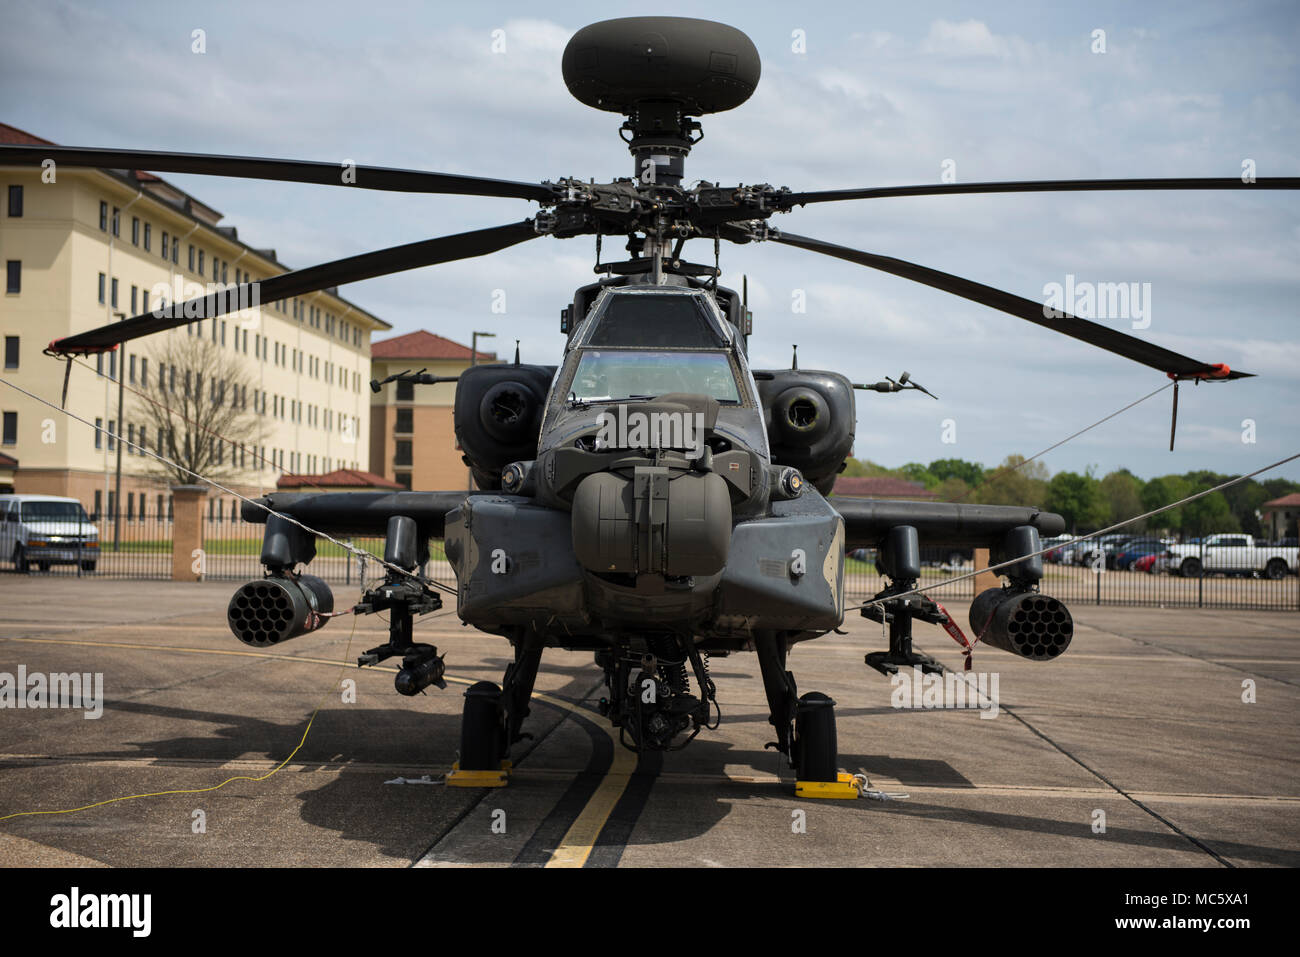 A Boeing AH-64 Apache helicopter sits on the Maxwell flightline March 27, 2018, on Maxwell Air Force Base, Alabama. The helicopters were grounded at Maxwell for four days because of bad weather. (U.S. Air Force photo by Airman 1st Class Charles Welty) - Stock Image